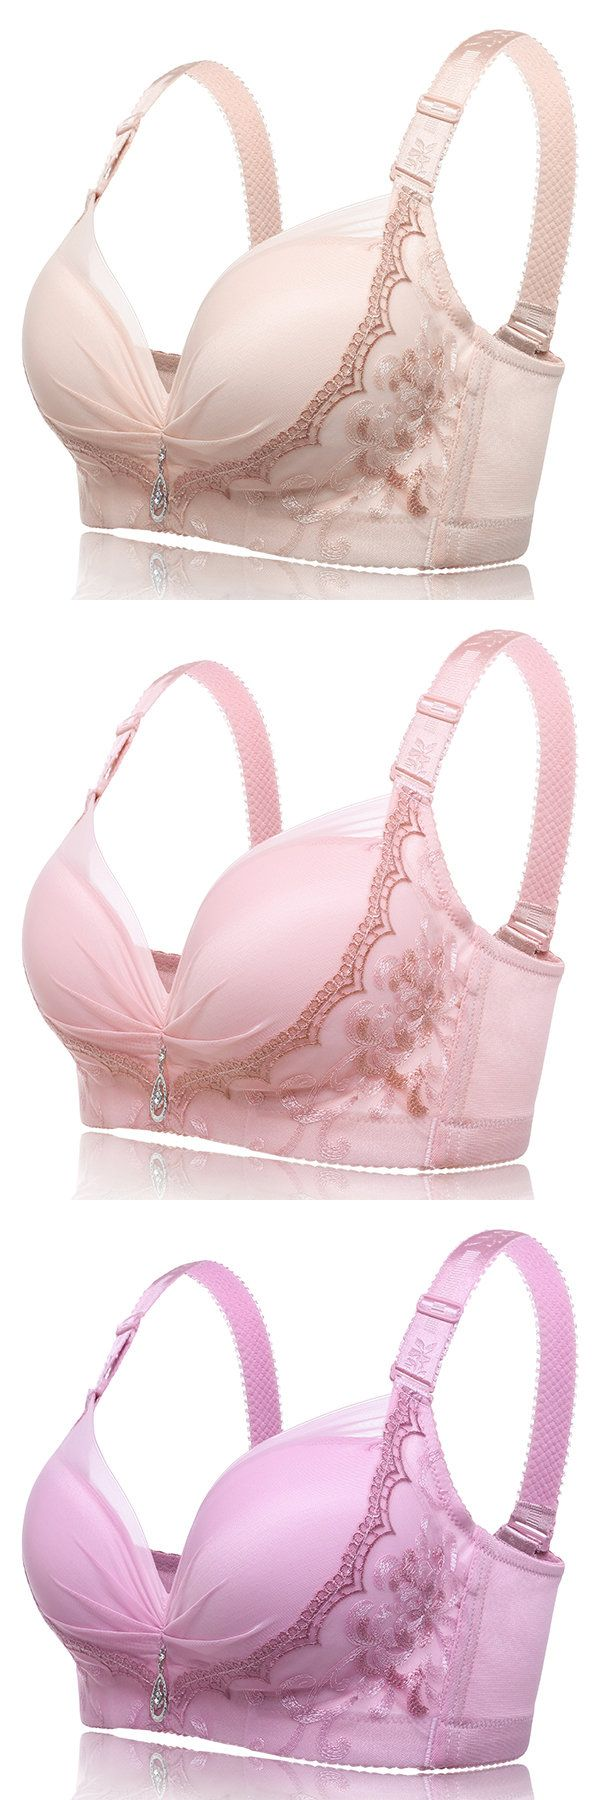 Wireless Soft Gather Embroidery Adjustable Bras